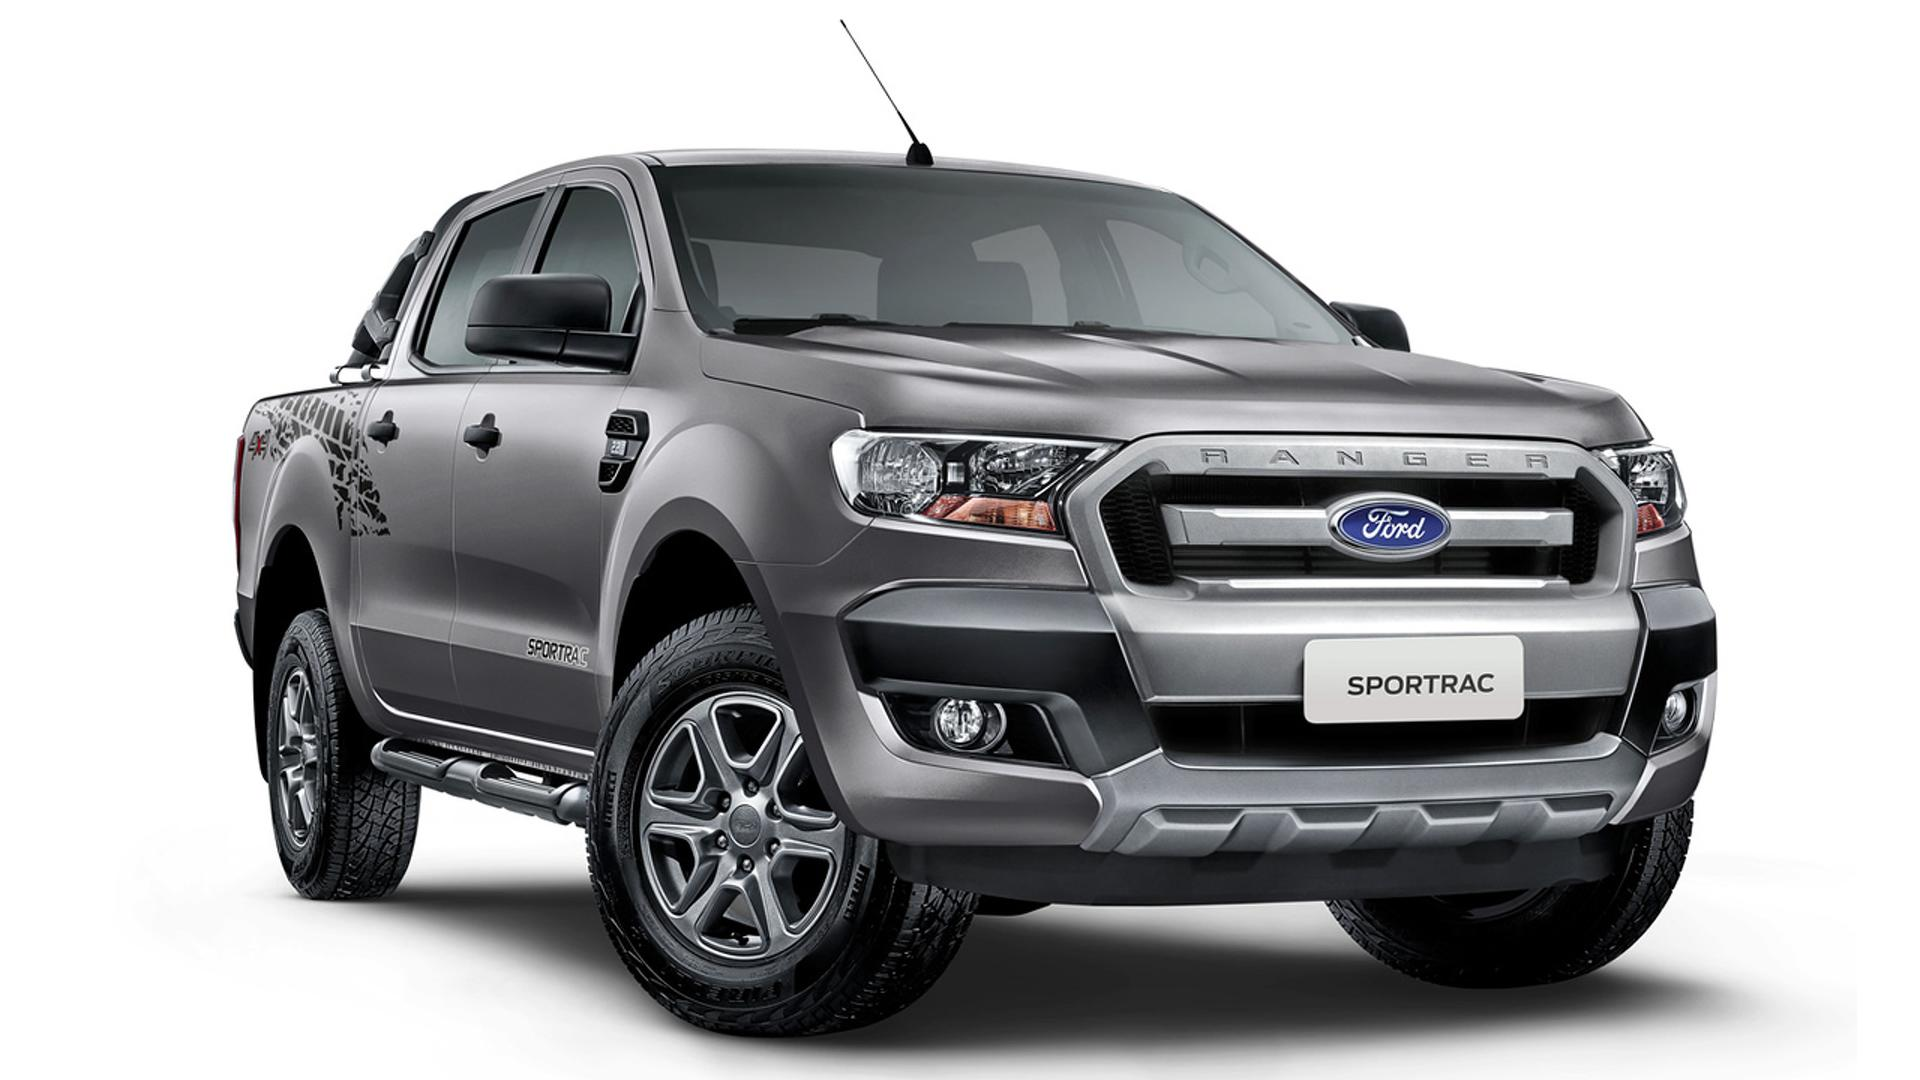 ford ranger 2018 chega ao mercado com vers o diesel mais barata carangos pb o portal. Black Bedroom Furniture Sets. Home Design Ideas